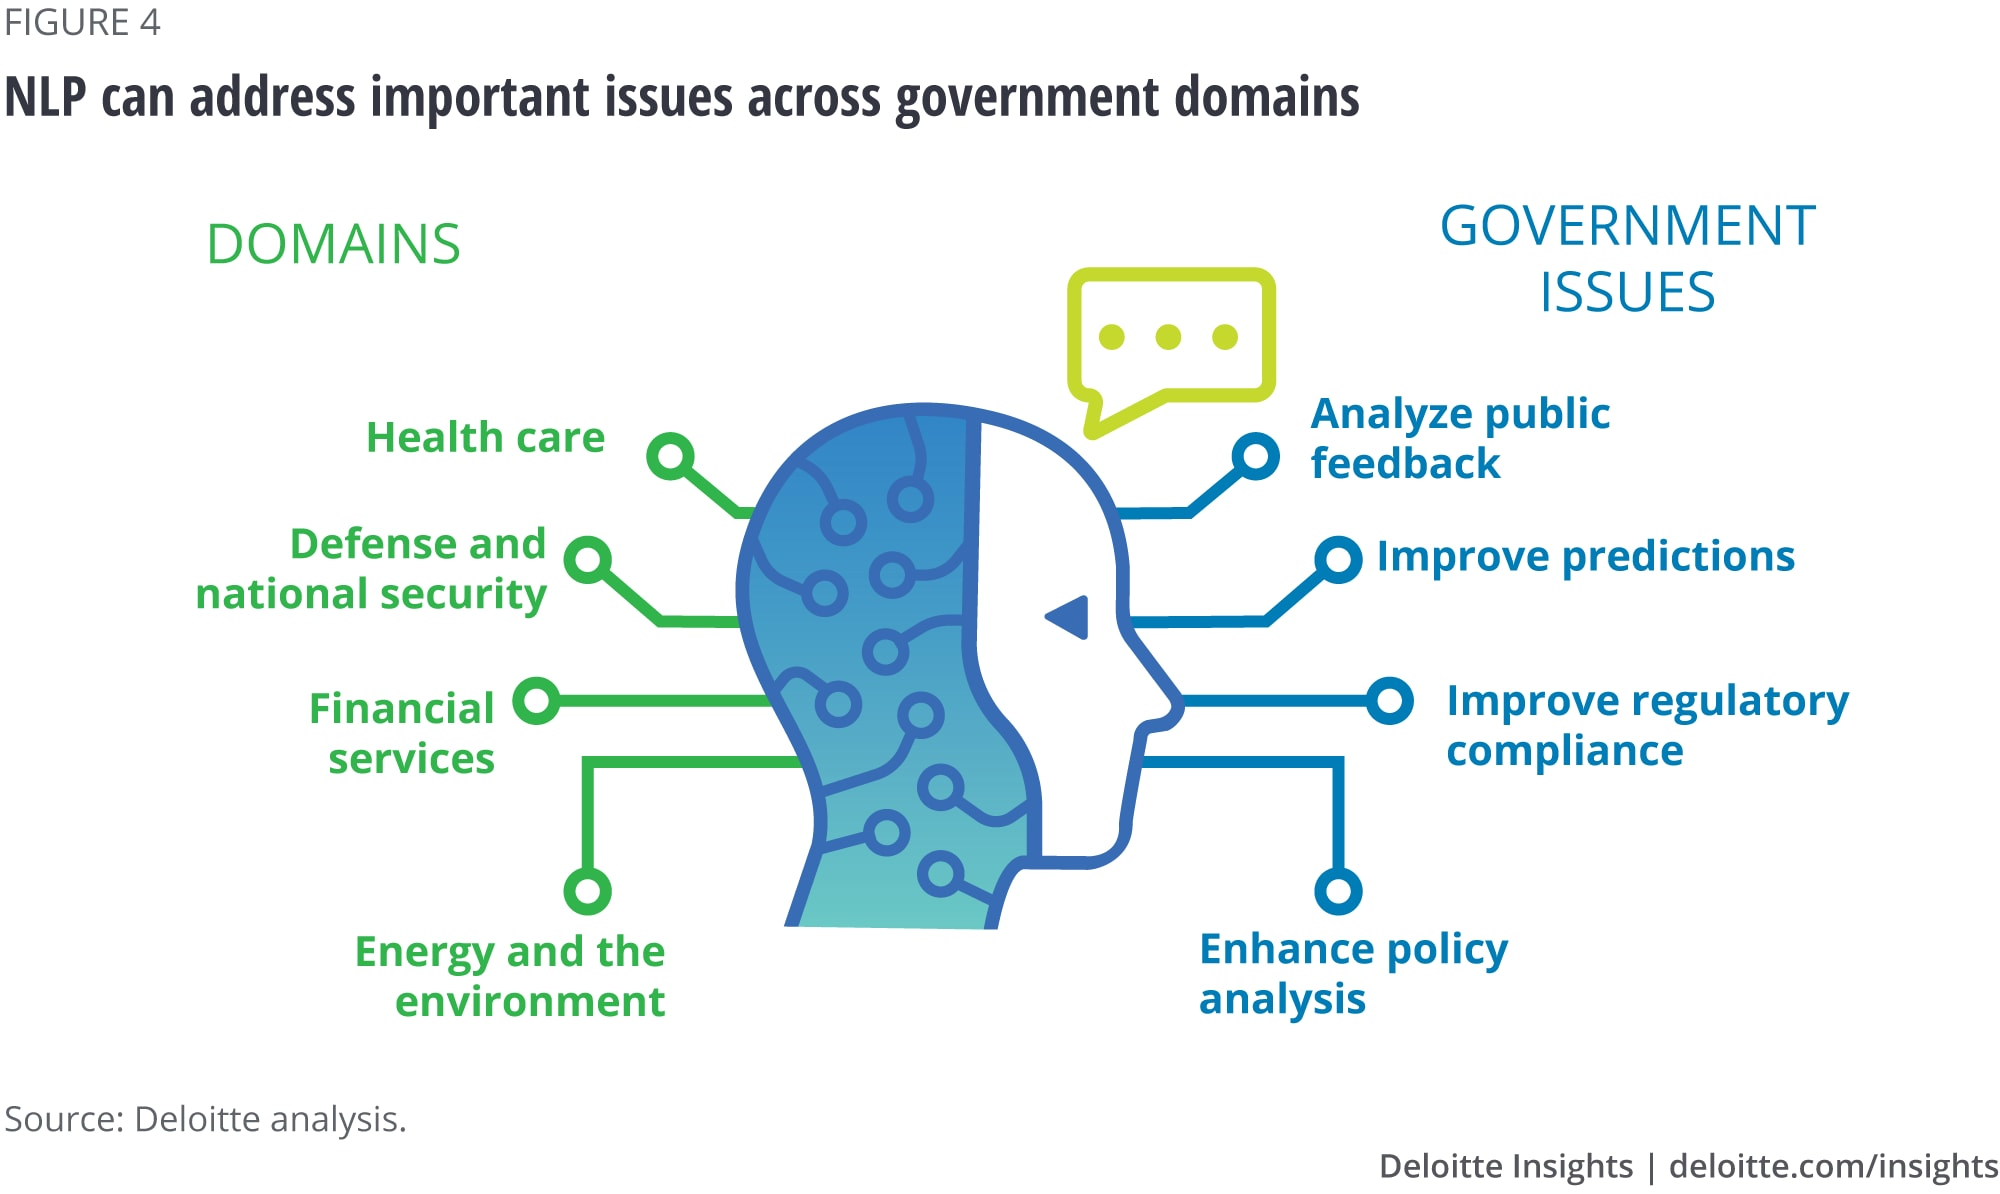 NLP can address important issues across government domains